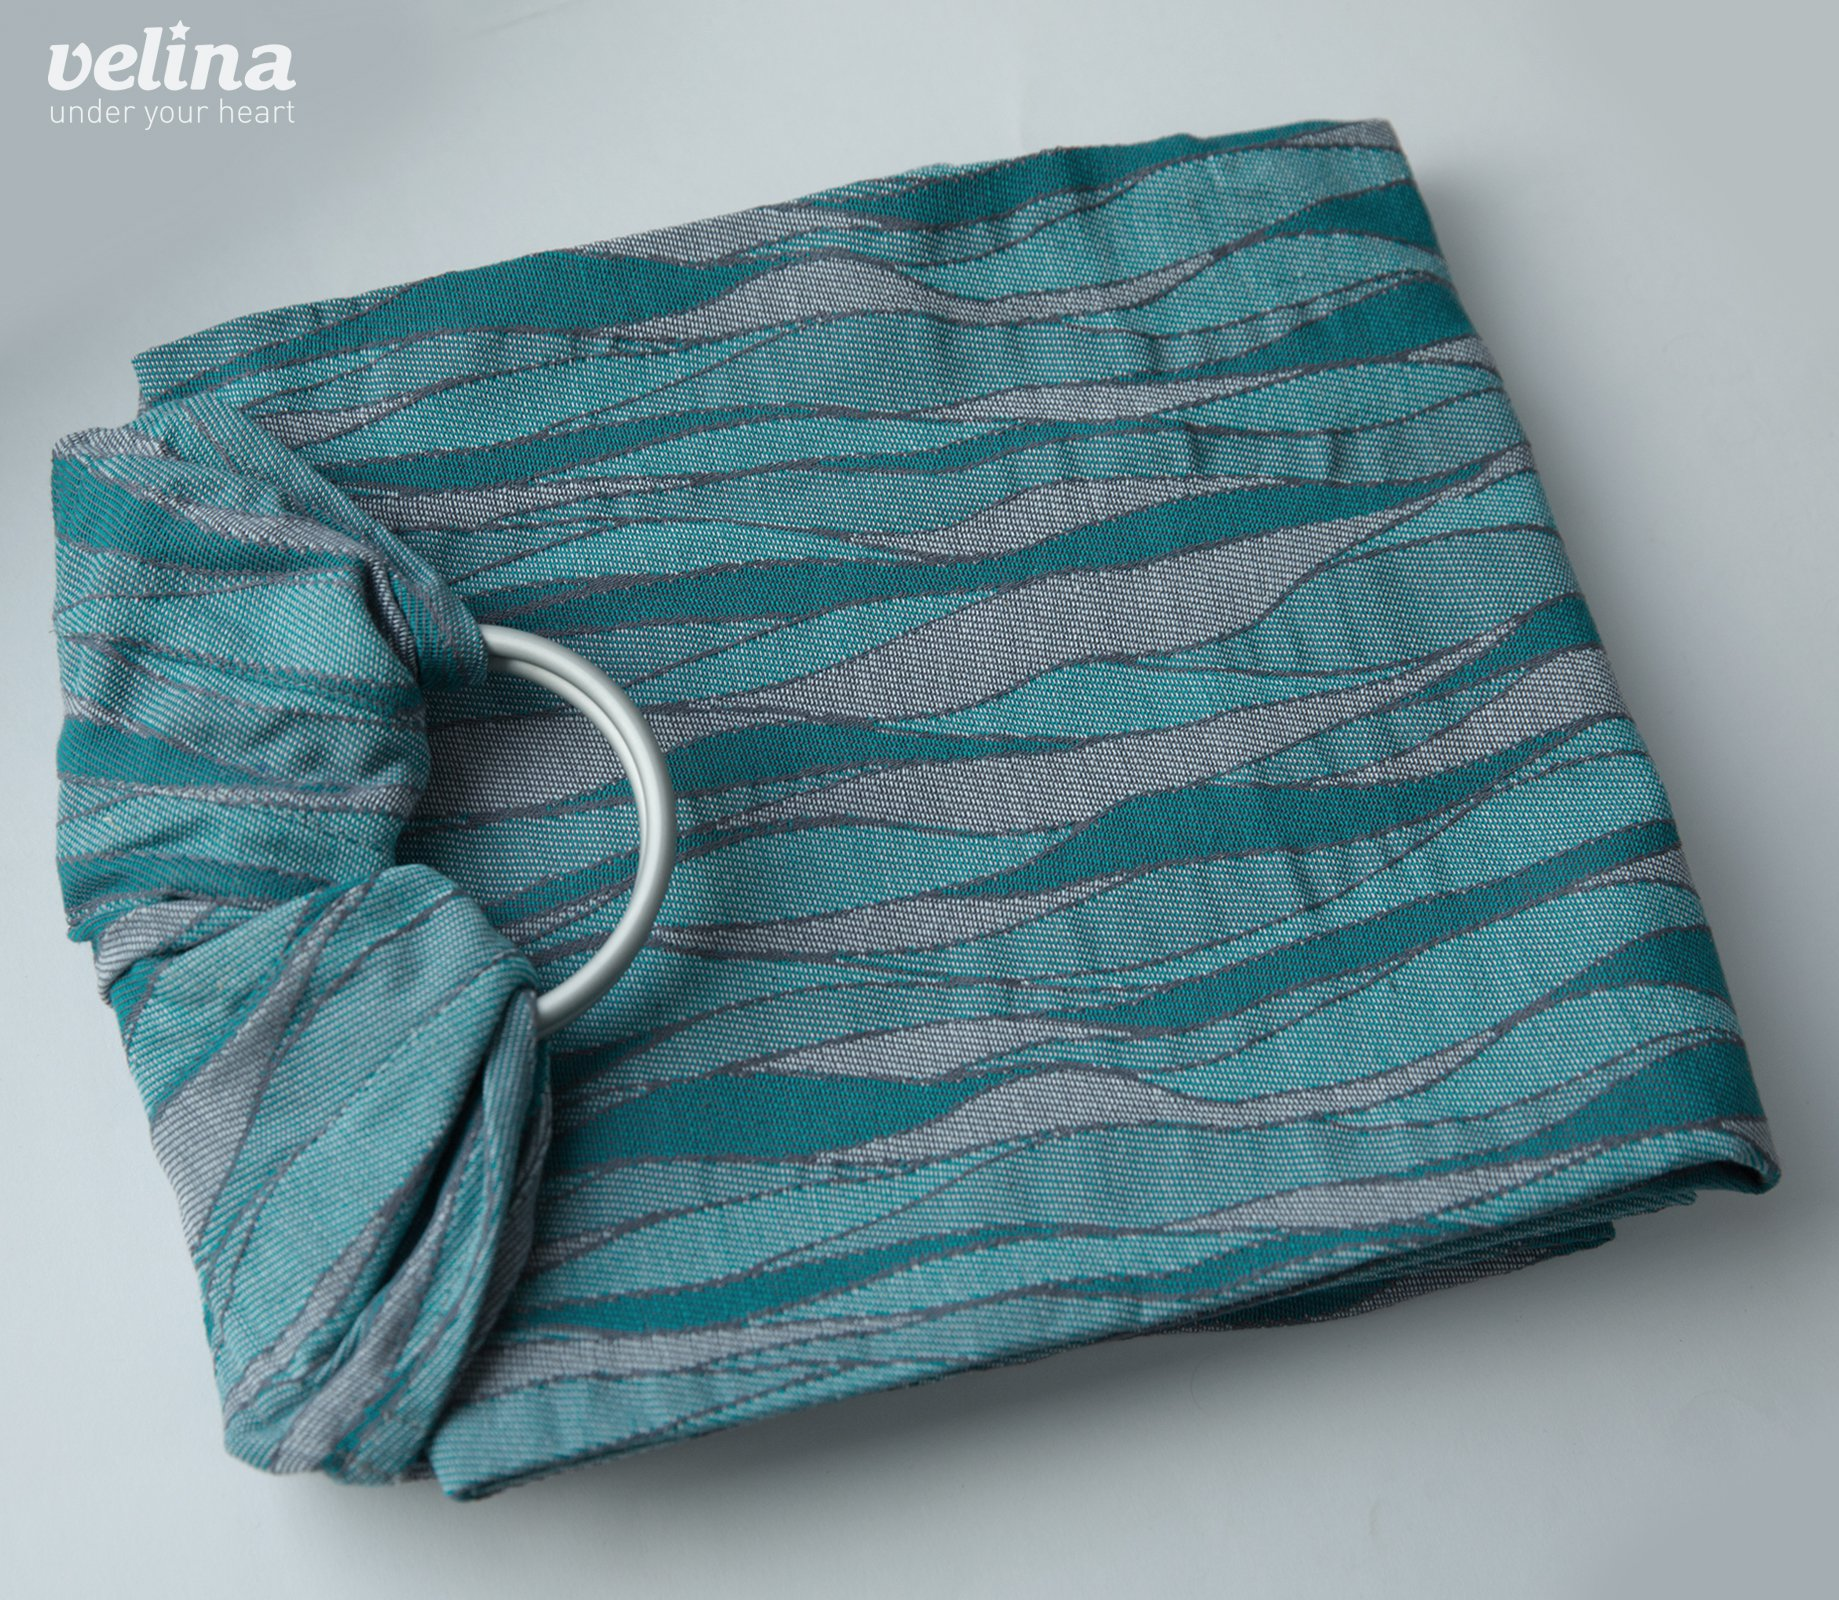 http://slingi.ru/products_pictures/304/large/1454406542_rs-velina-petrol-waves-05.jpg